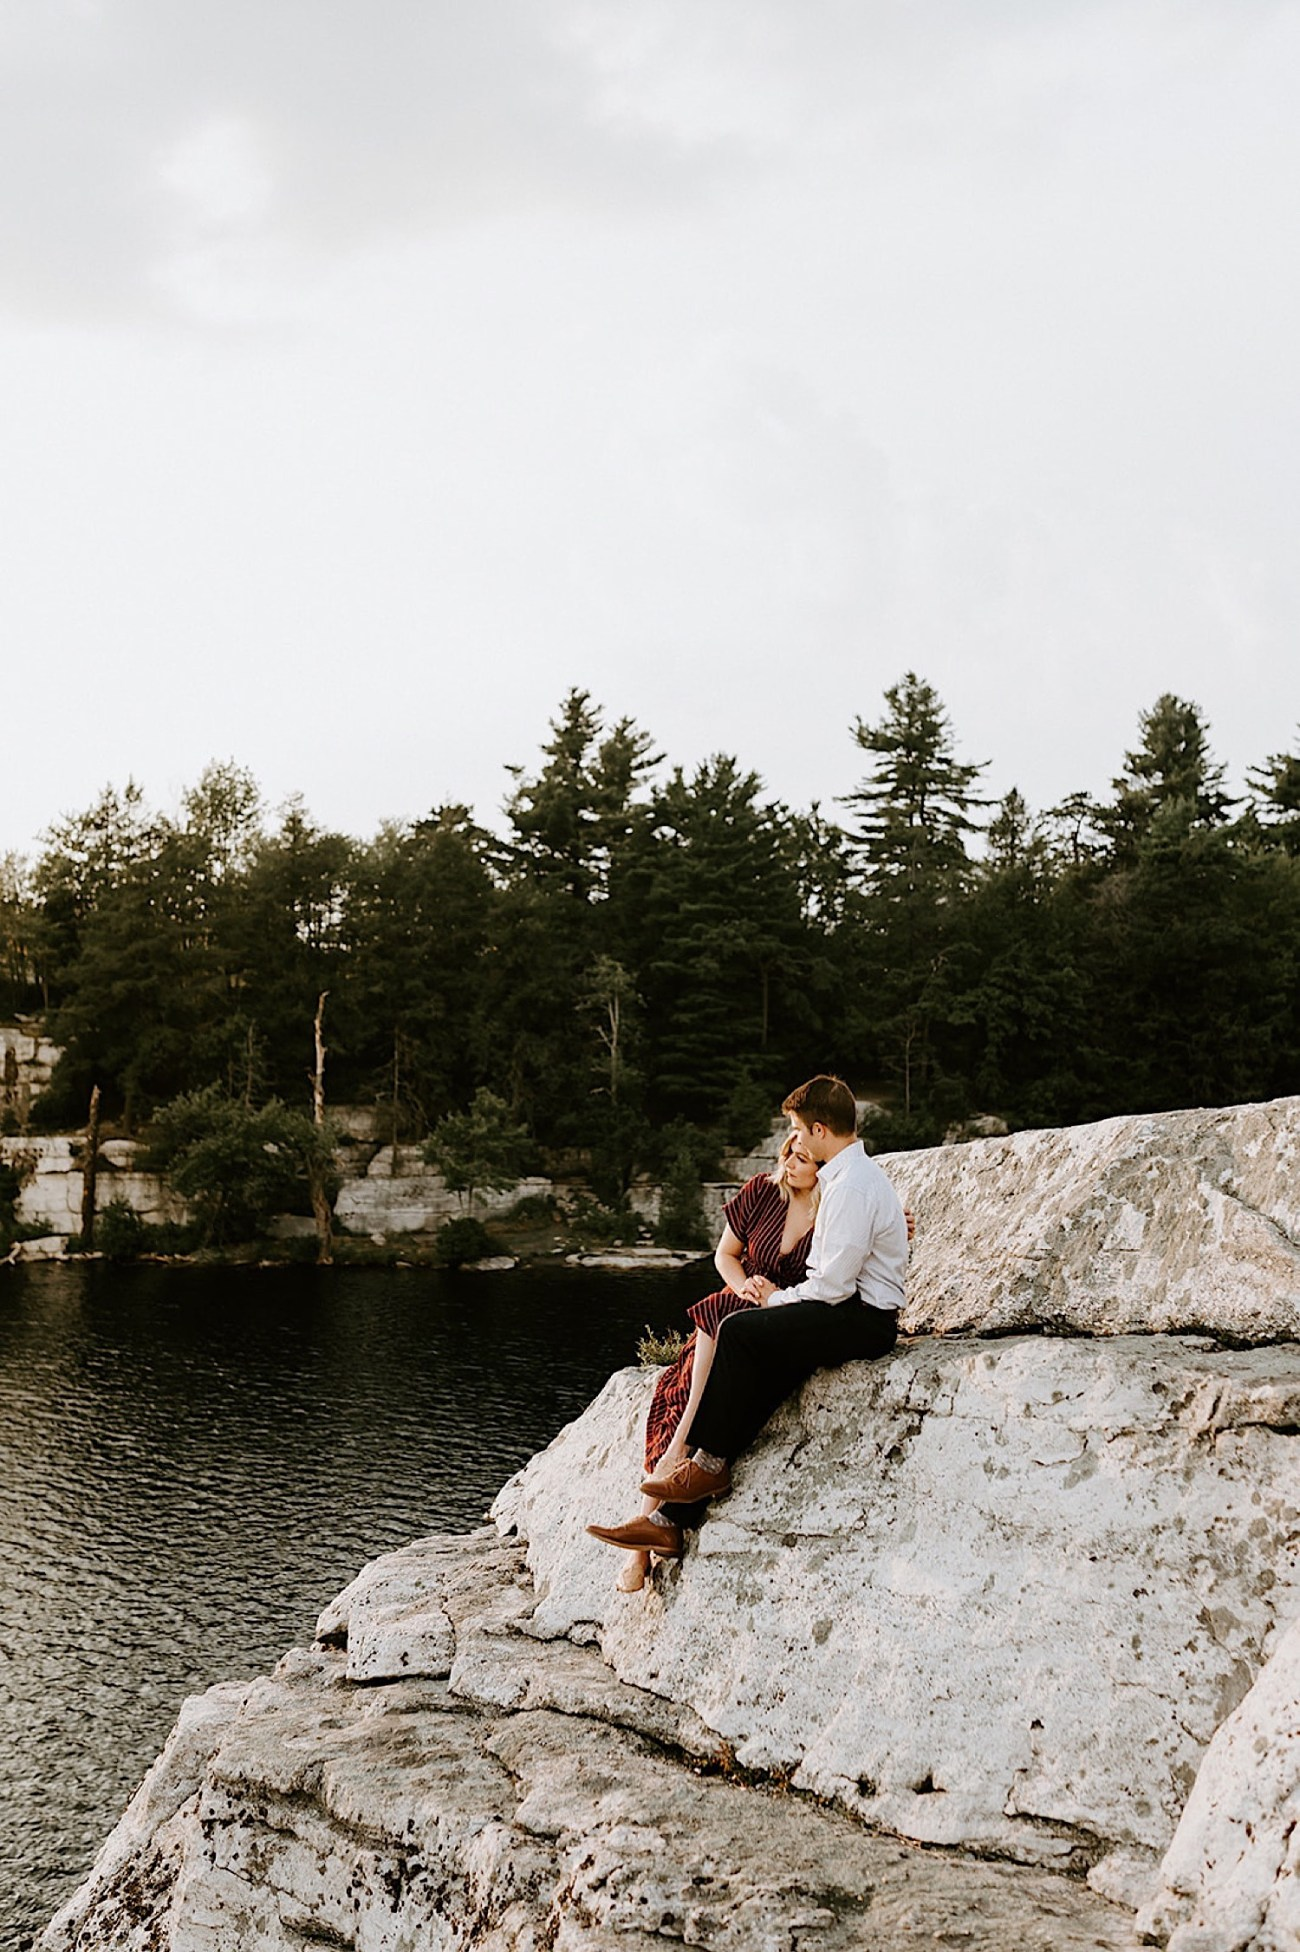 043 Minnewaska State Park Engagement Photos Minnewaska Enagement New York Wedding Photographer Catskill Wedding Photographer Hudson Valley Wedding Photographer